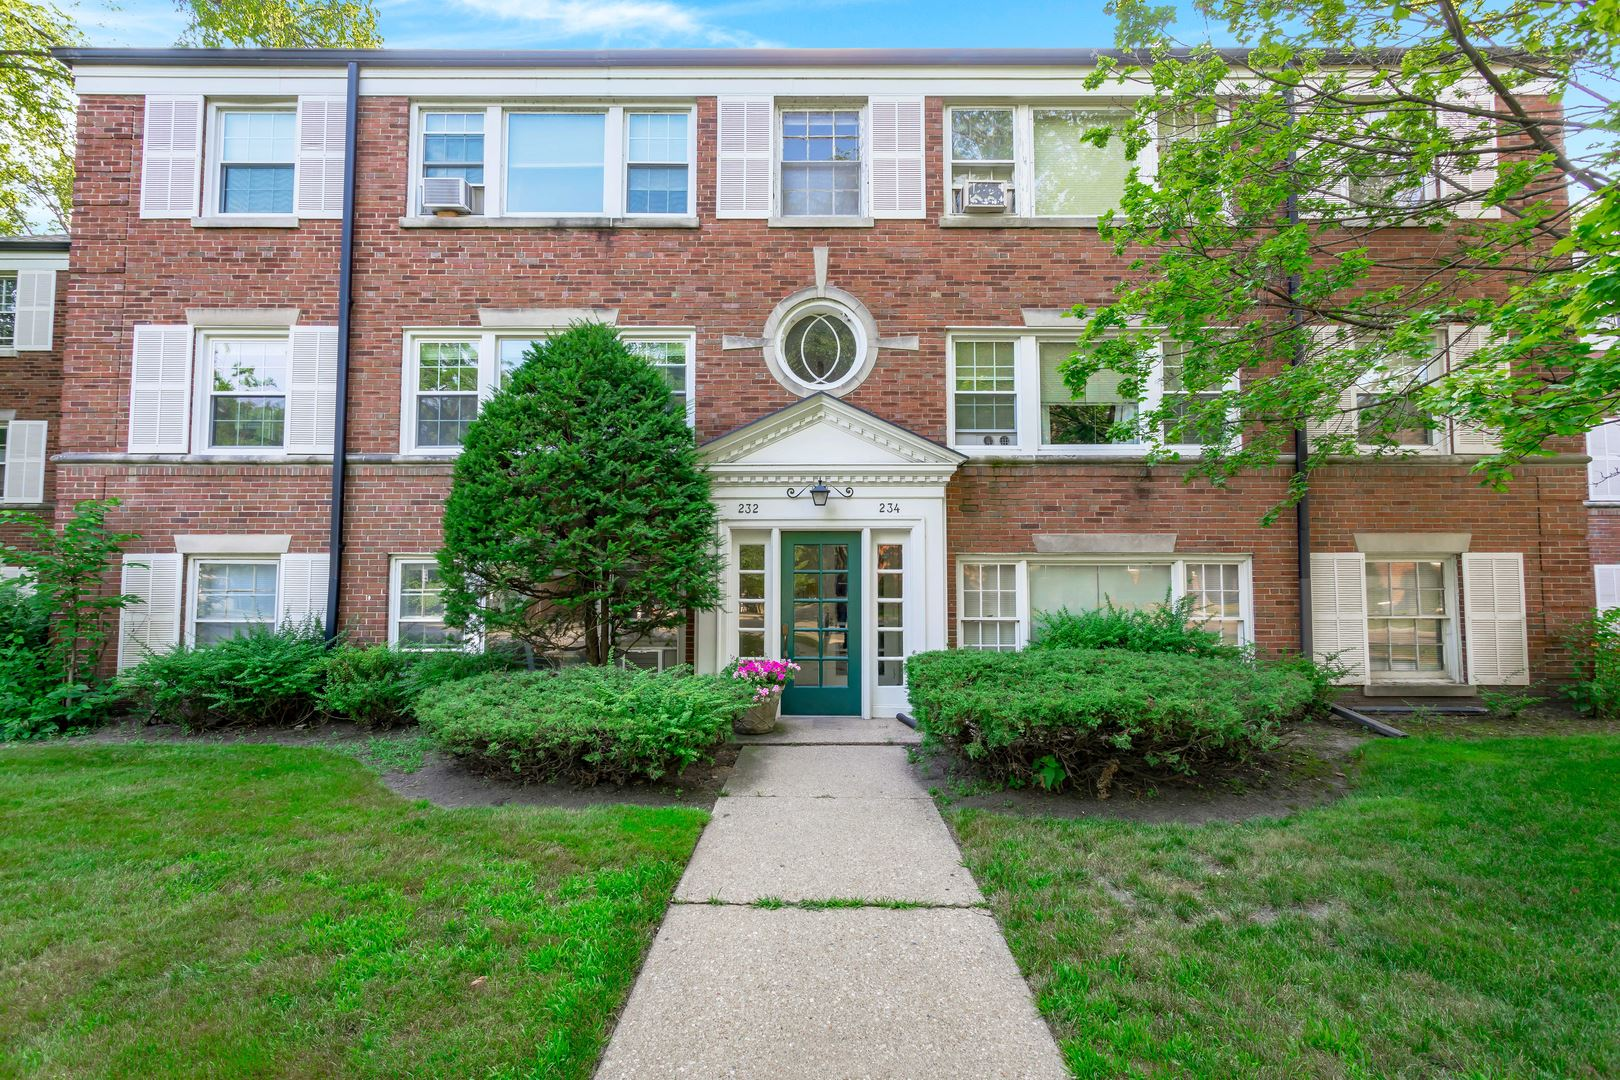 232 Ridge Avenue #1, Evanston, IL 60202 - #: 10777900